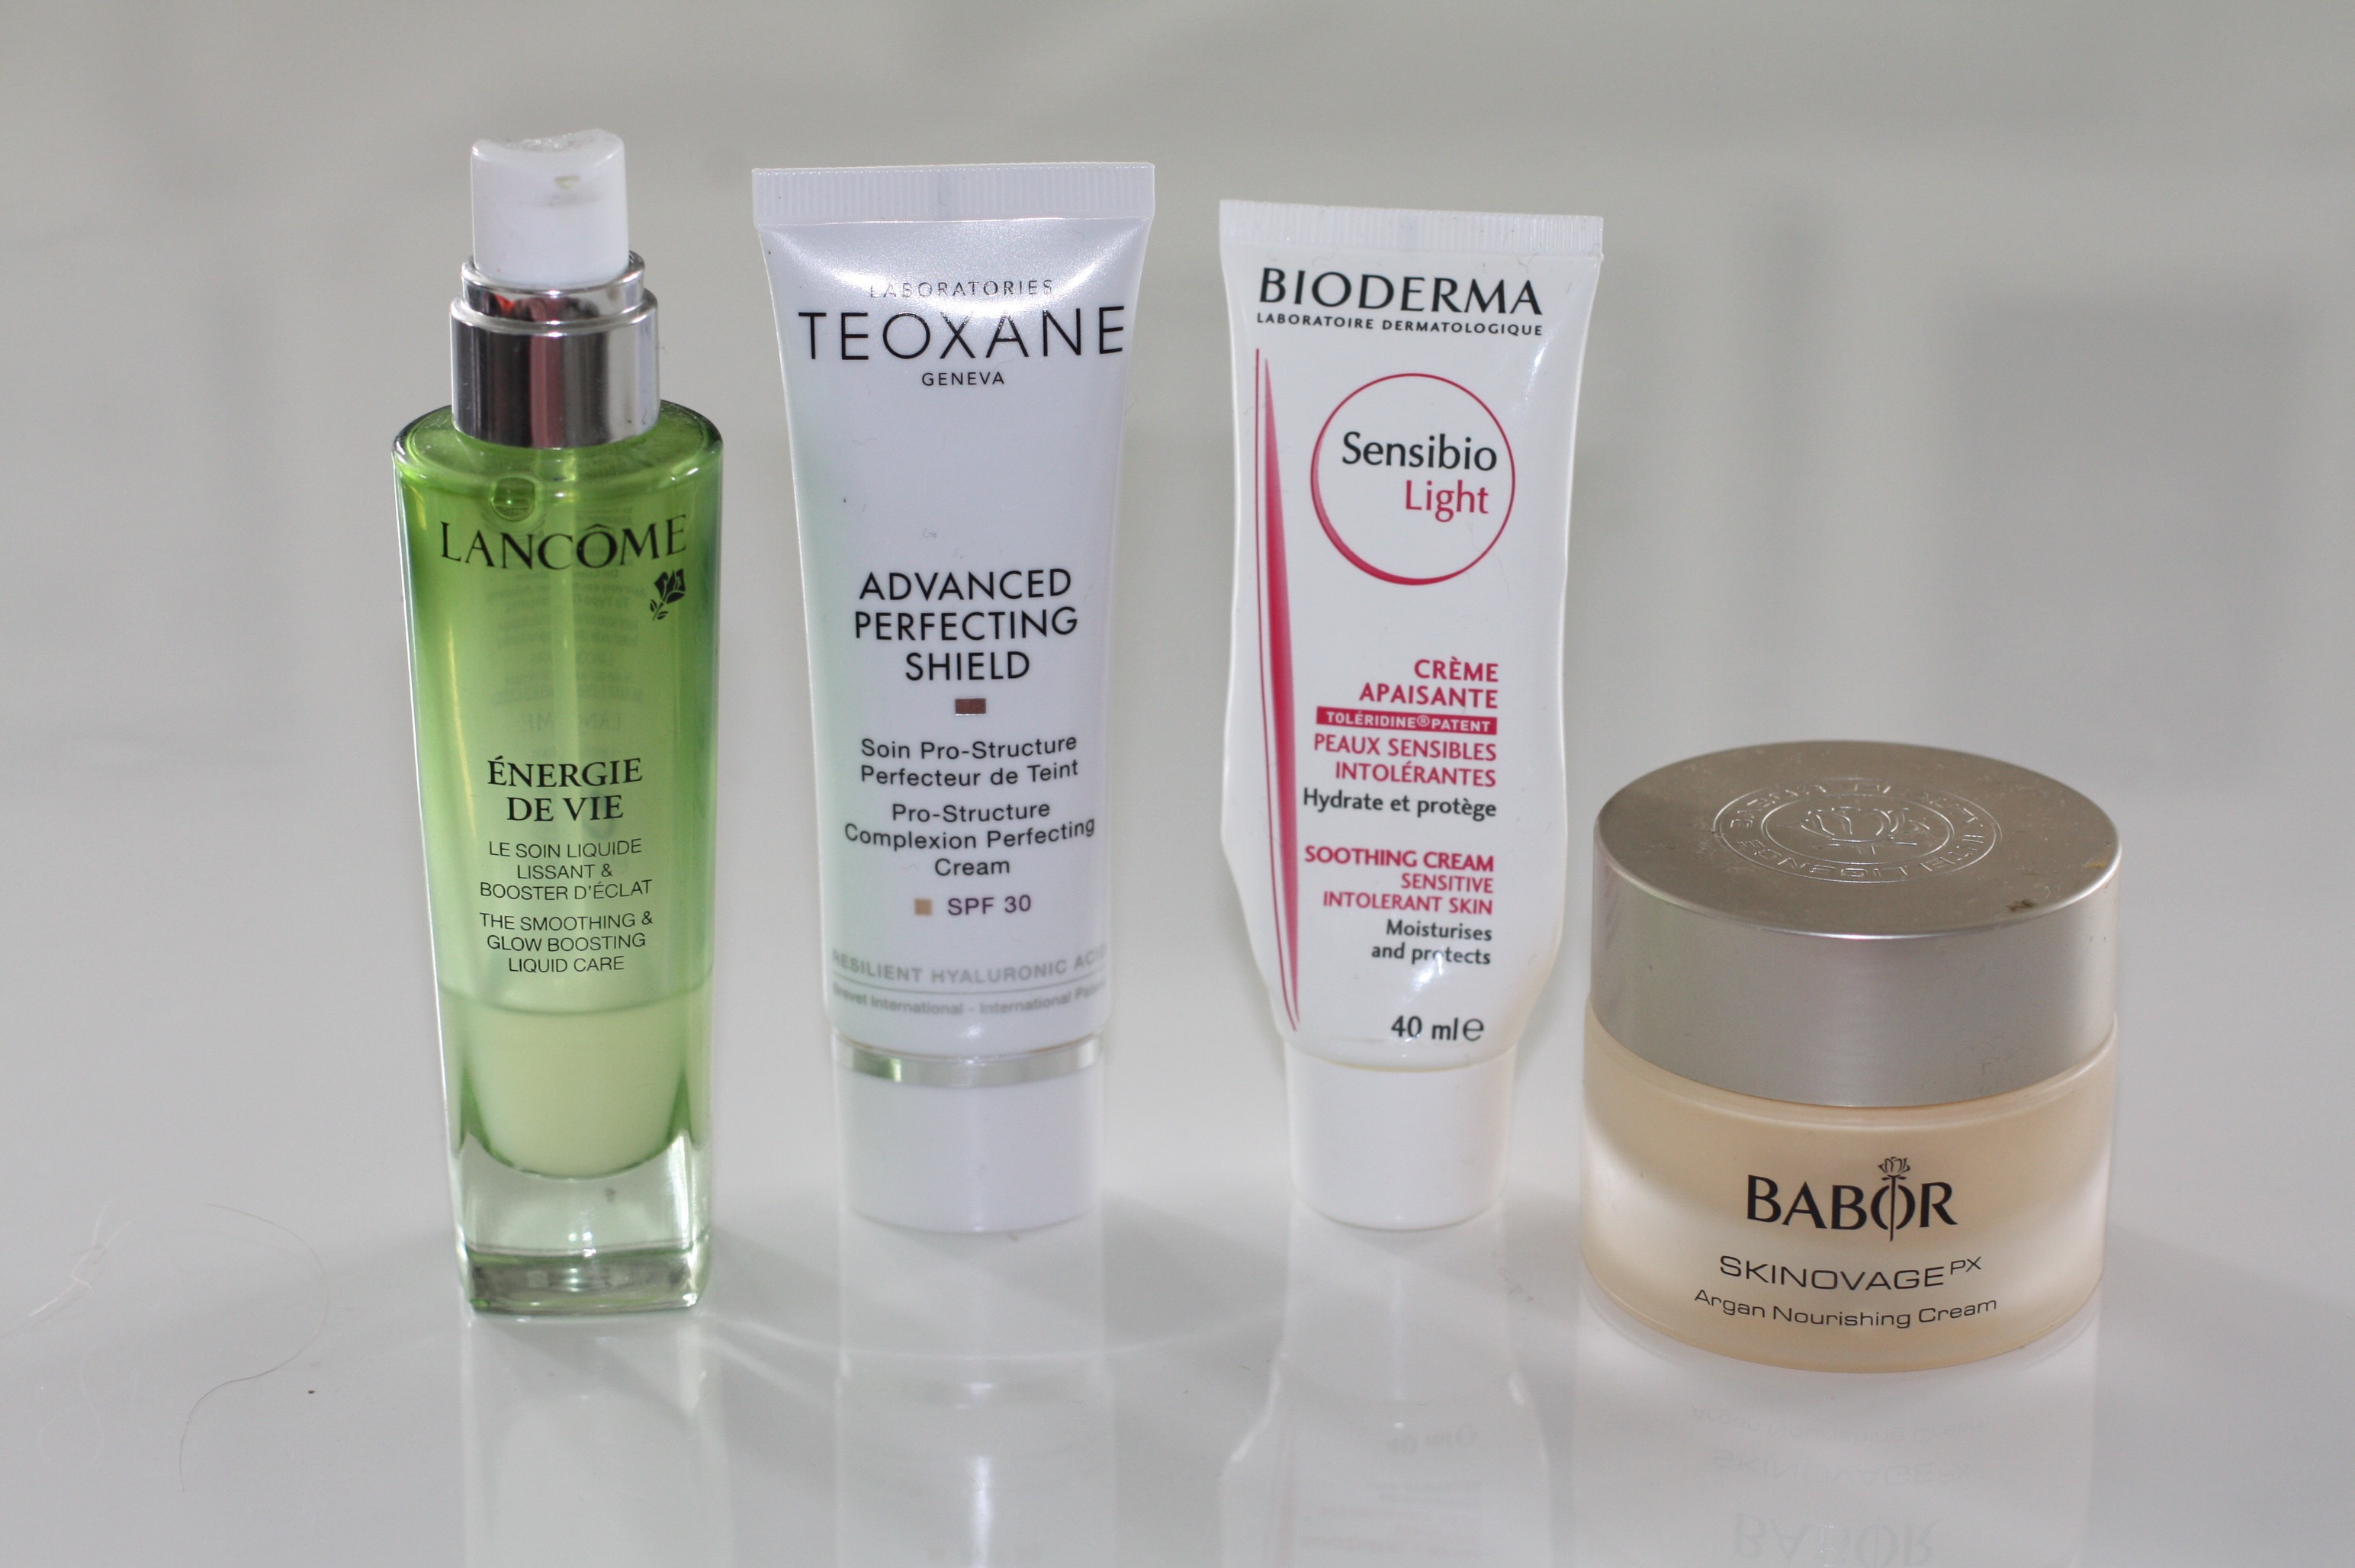 Gesichtspflege-Routine mit Lancome Energie de Vie, Teoxane Advanced Perfect Shield, Bioderma Sensibio Lieght Creme und Babor Argan Nourishing Night Creme